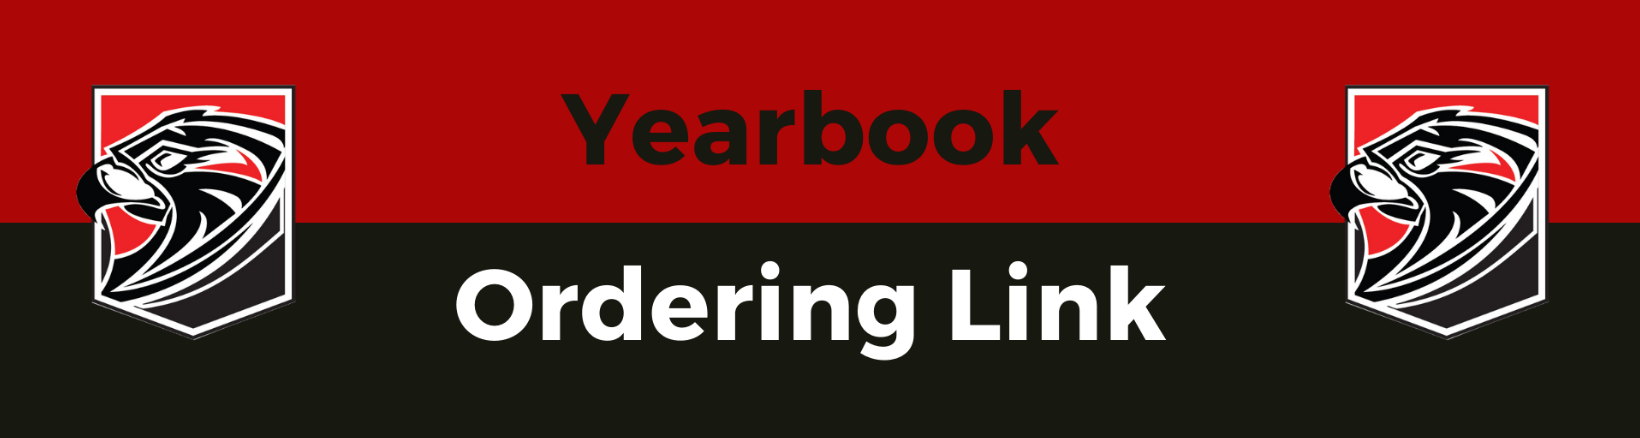 Yearbook Ordering Link